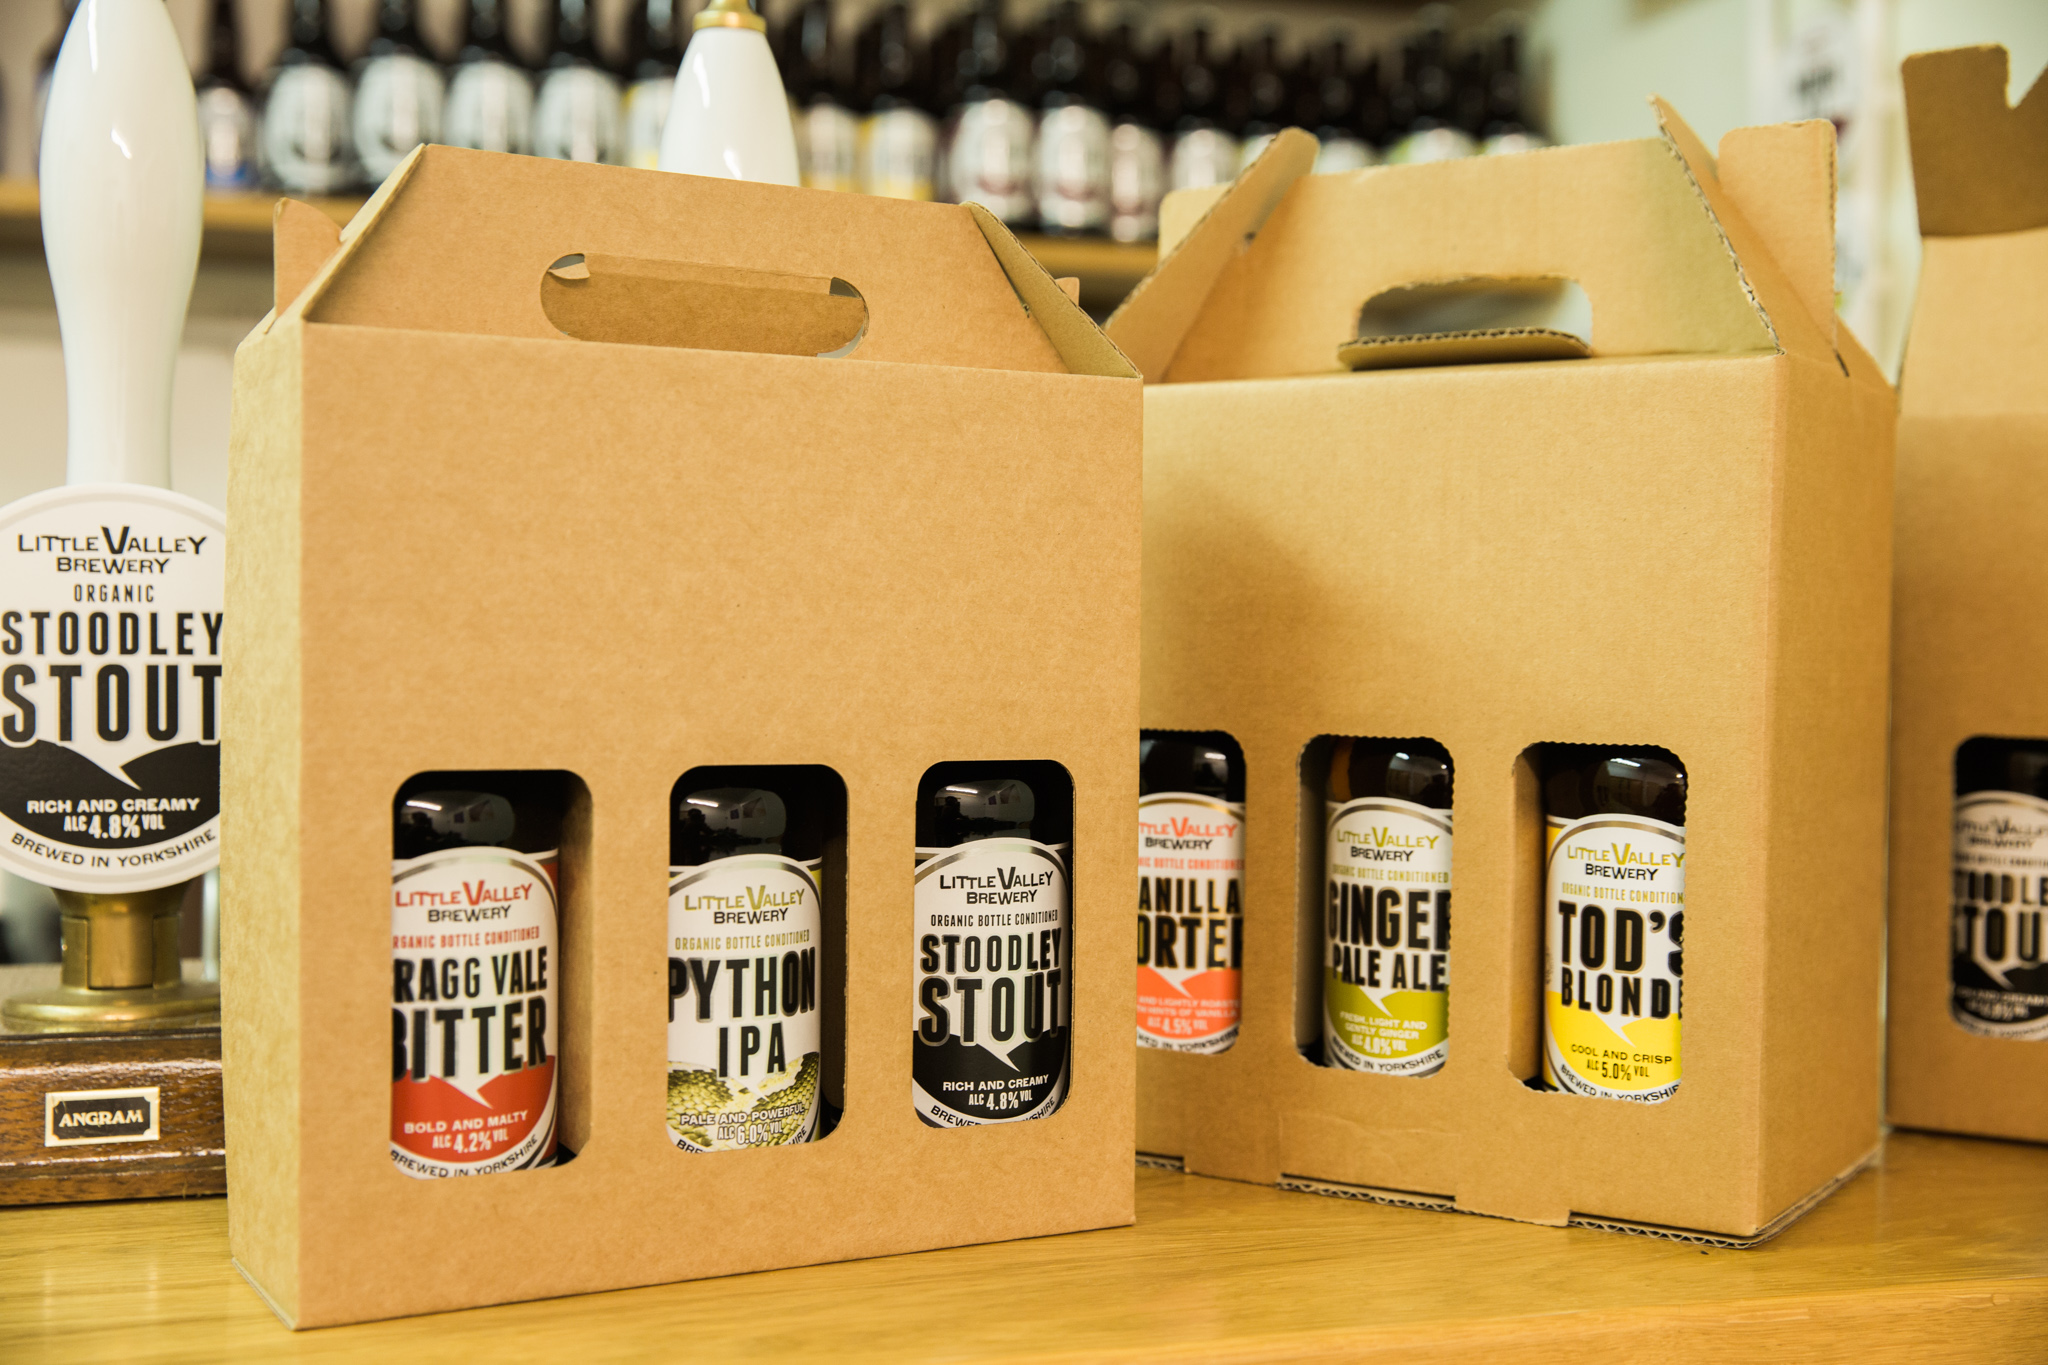 As part of its 10th anniversary celebrations, Little Valley Brewery has announced the launch of its brand new website